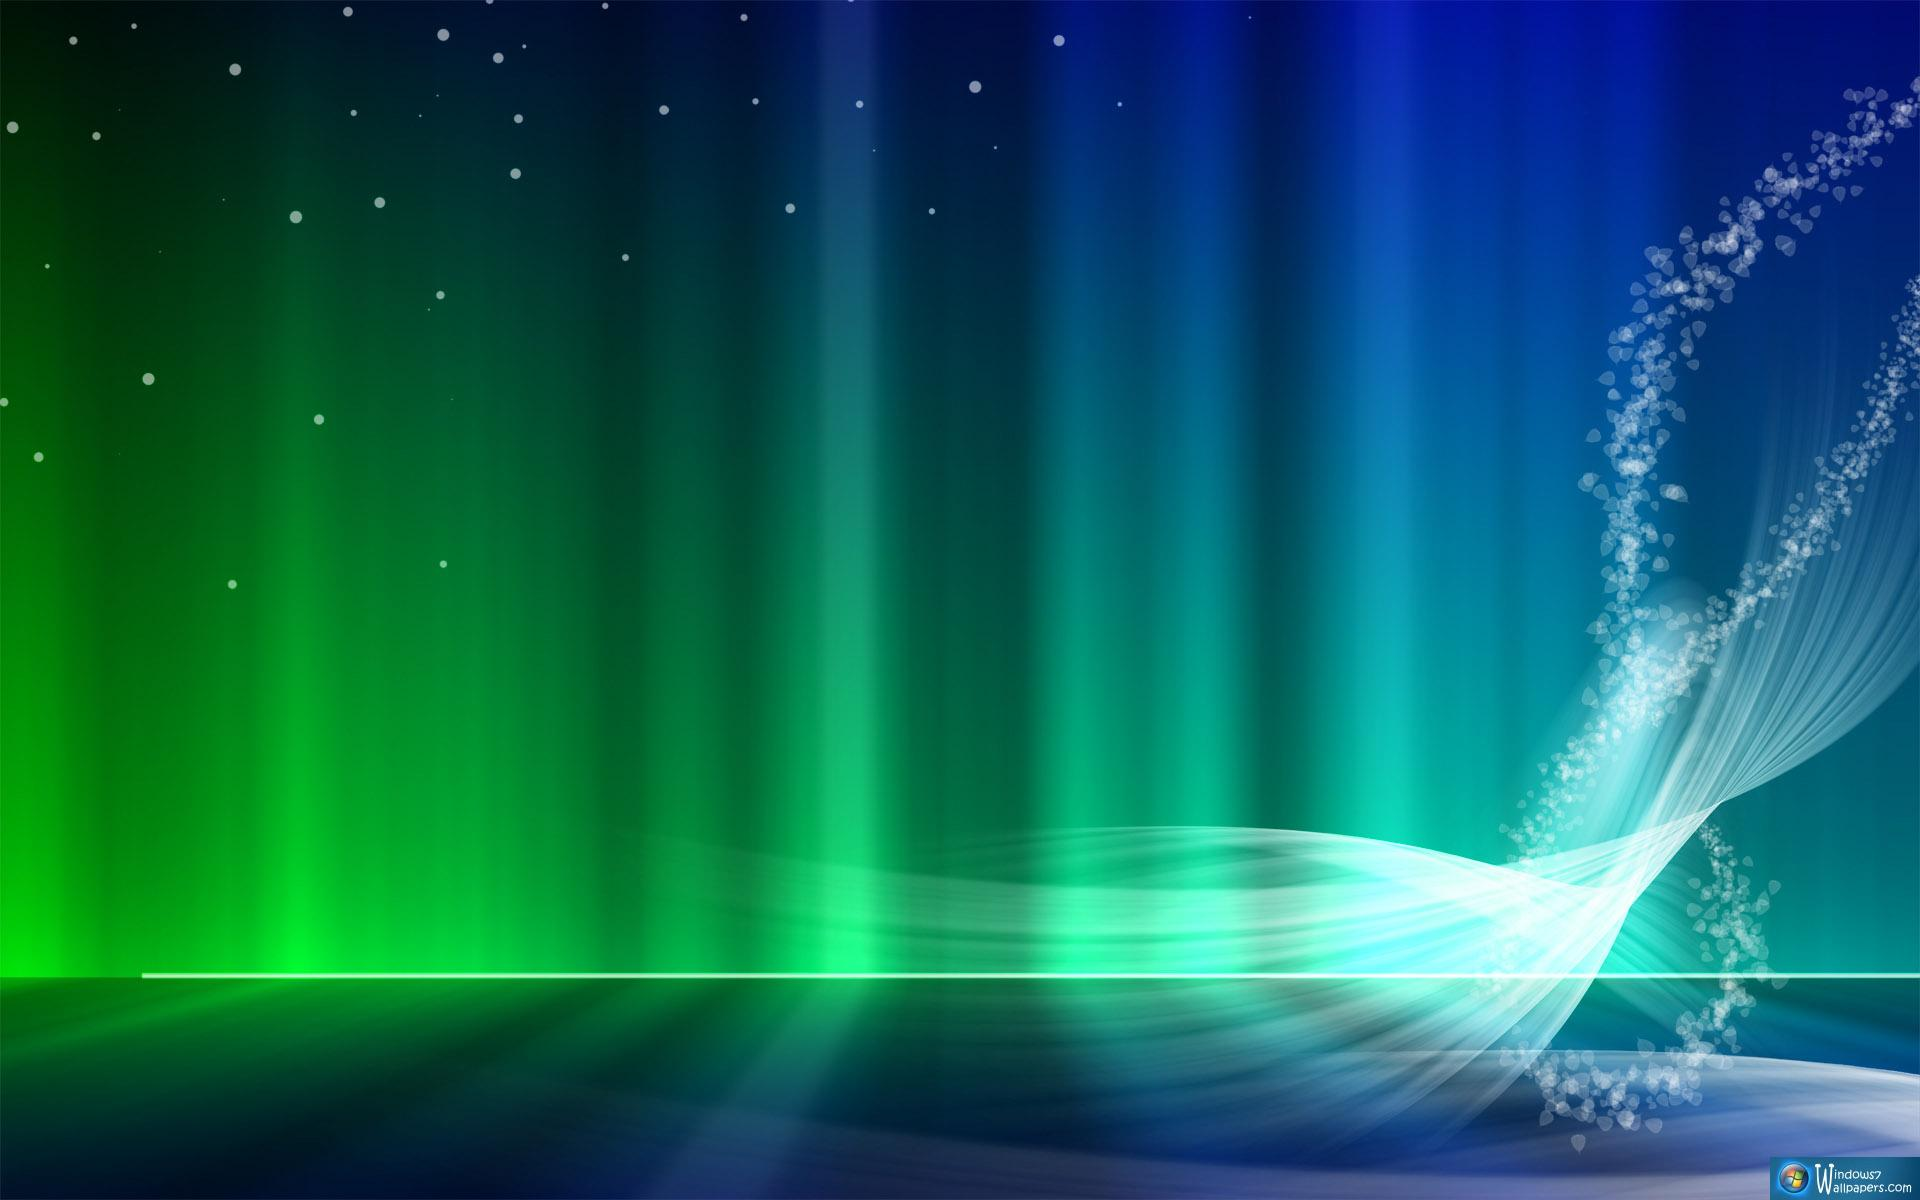 Windows 7 Wallpaper High Definition